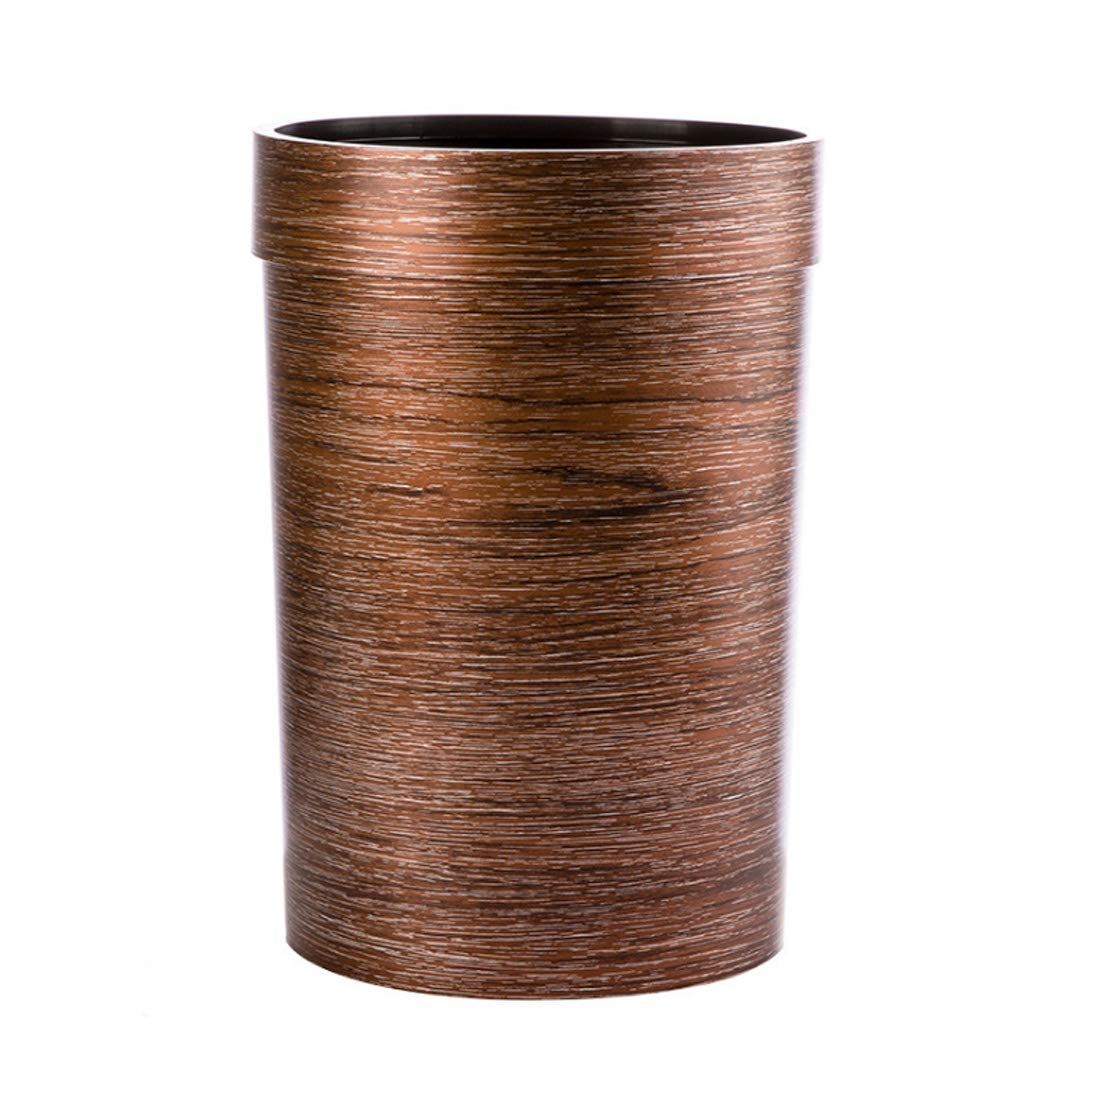 WOLFBUSH Trash Bin 9L Wood Grain Garbage Can Plastic Pressure Ring Waste Basket Without Lid (Coffee) by WOLFBUSH (Image #1)